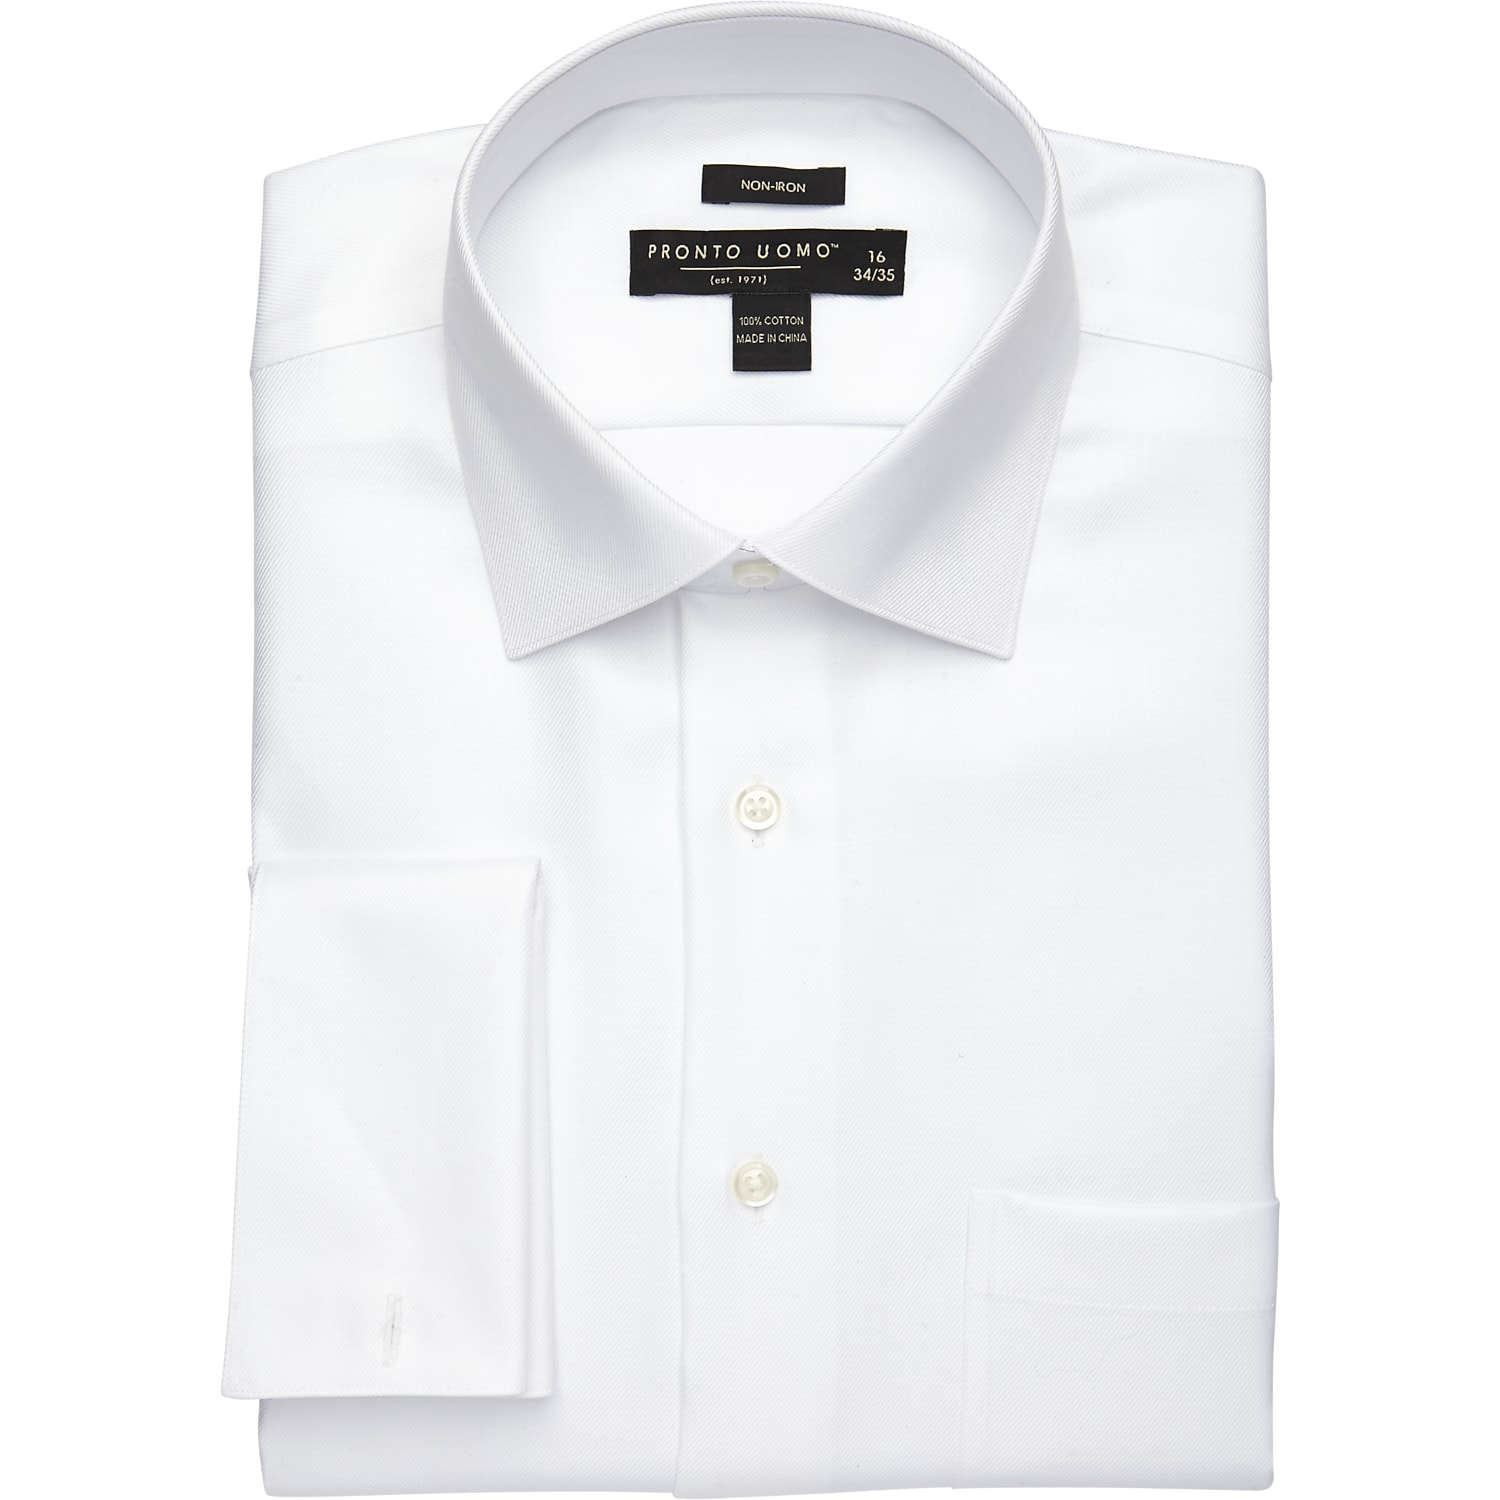 Pronto Uomo Dress Shirts Mens Wearhouse